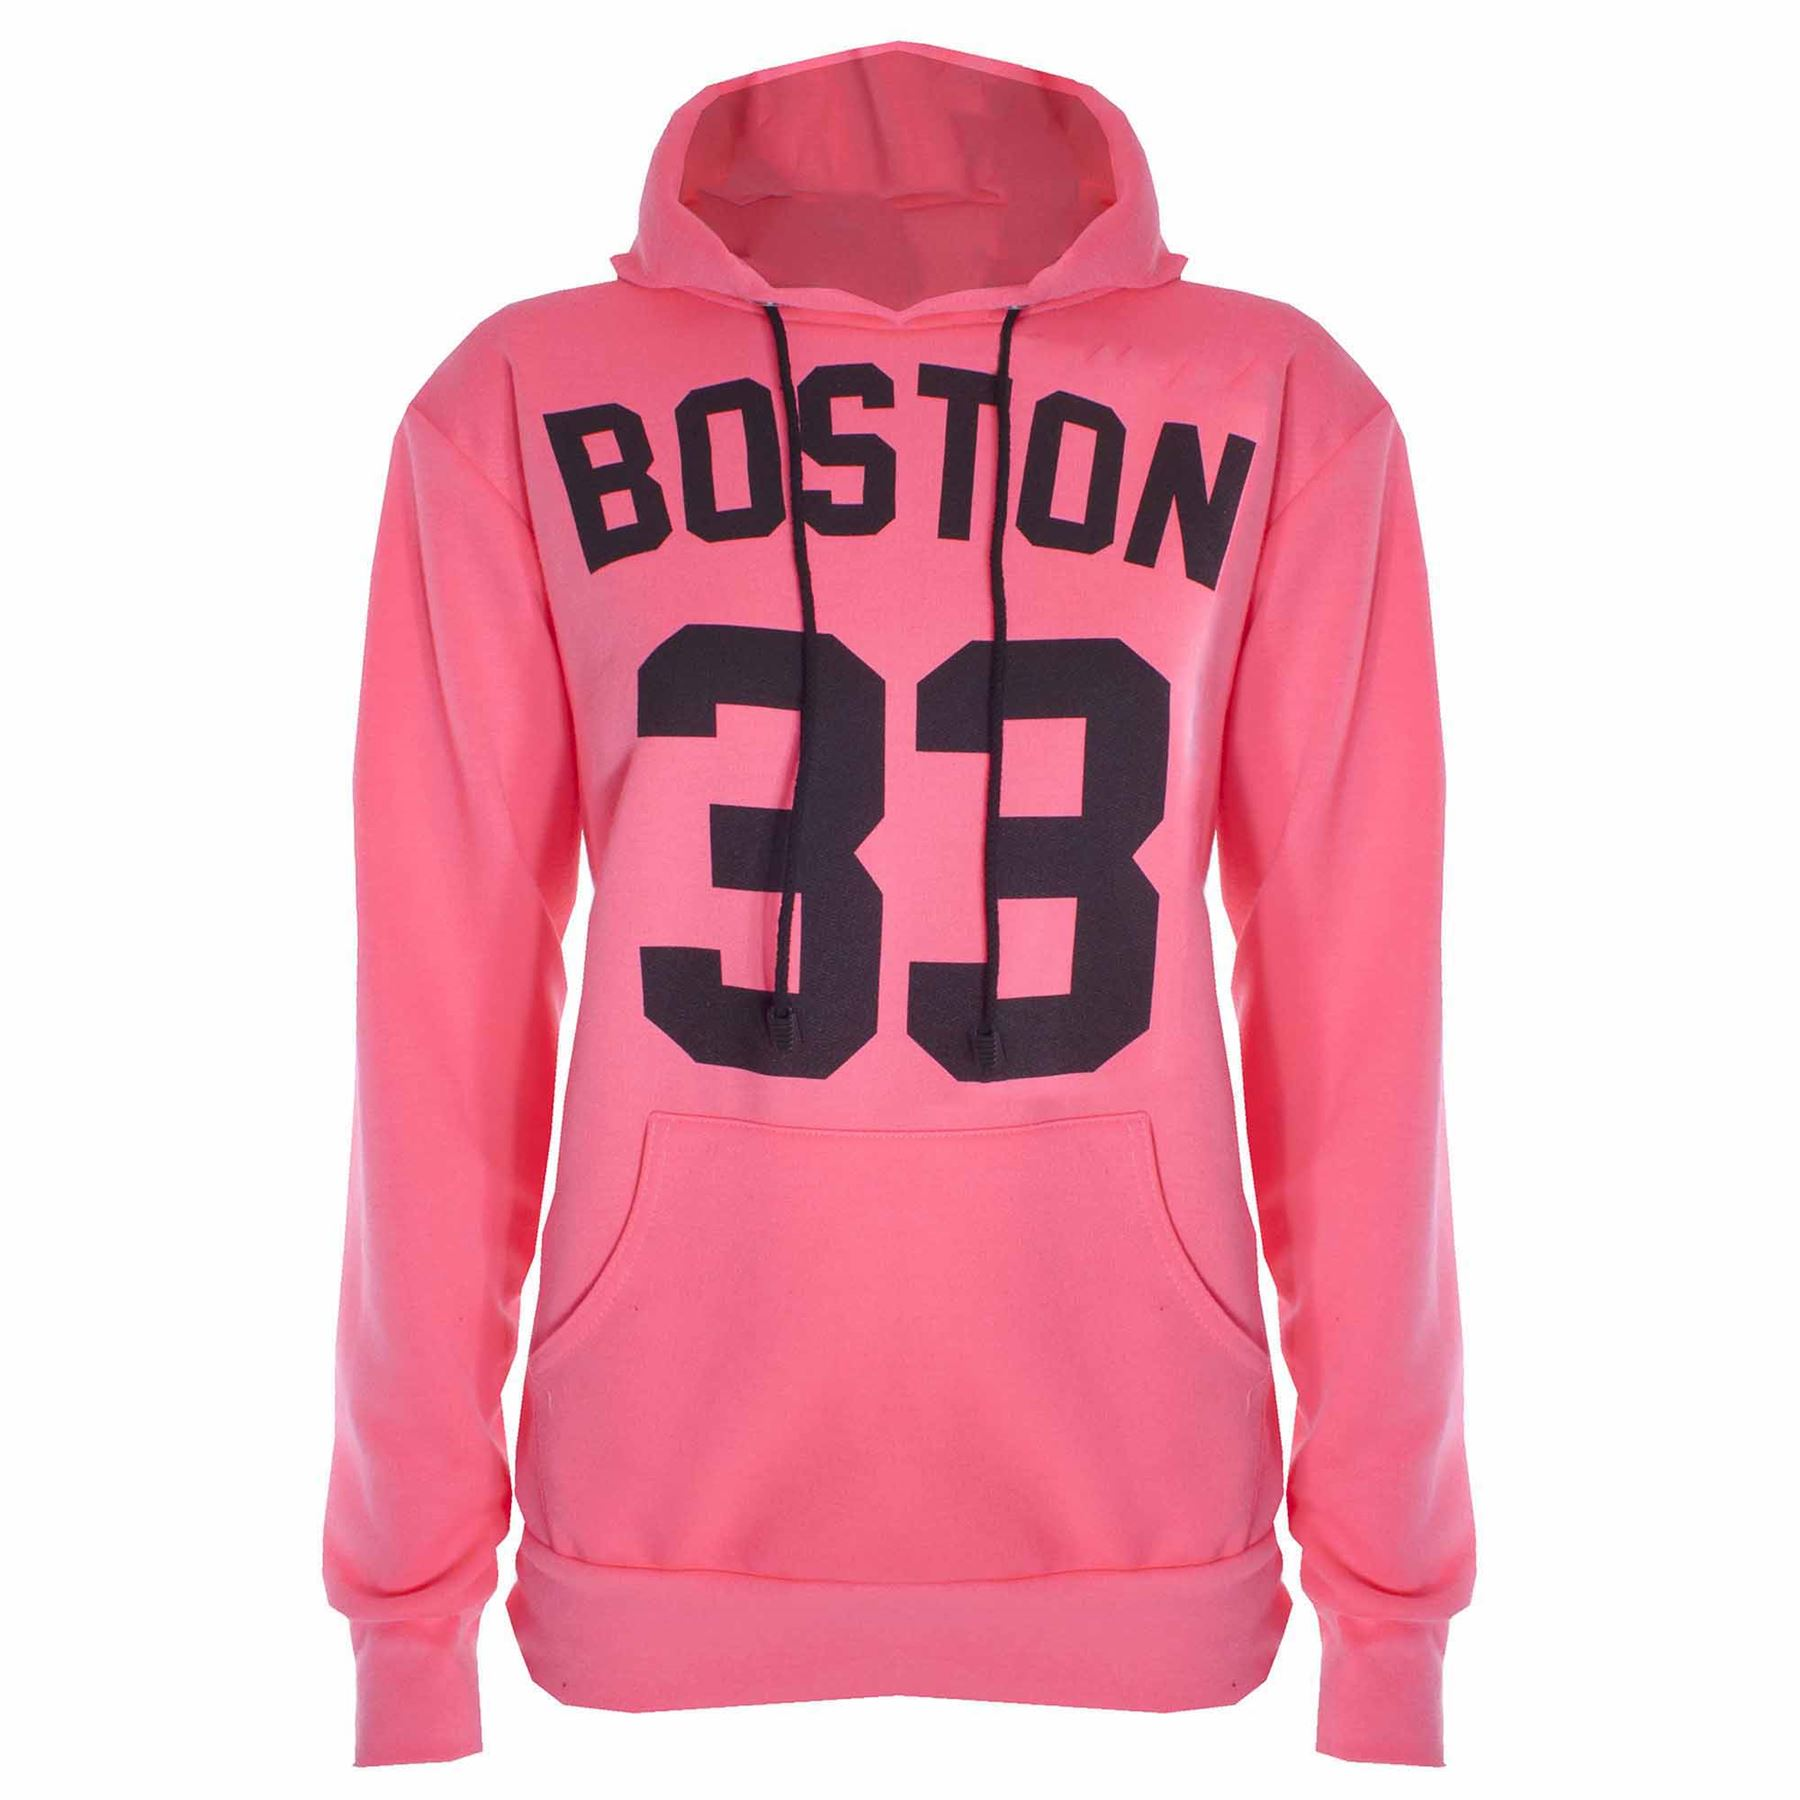 Find great deals on eBay for boston sweatshirt. Shop with confidence.